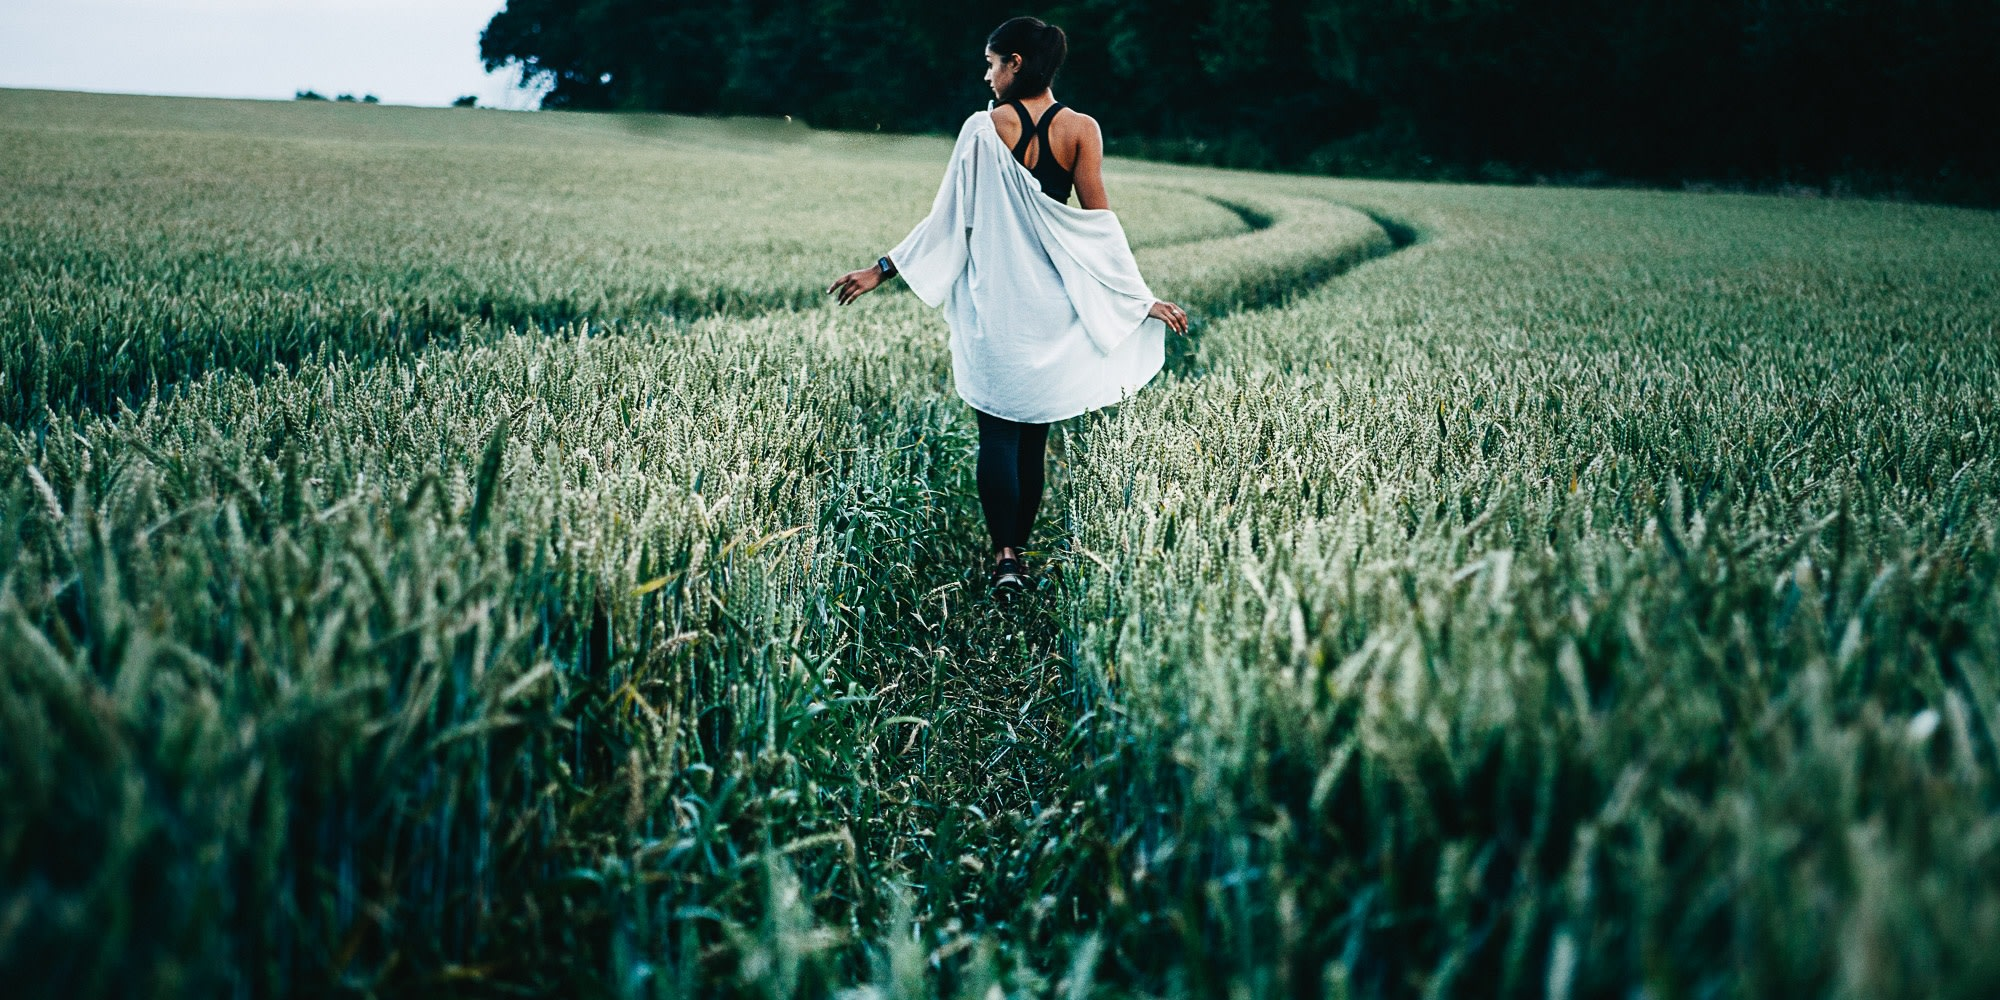 Woman walking through tall grass: metaphor for sustainable fashion